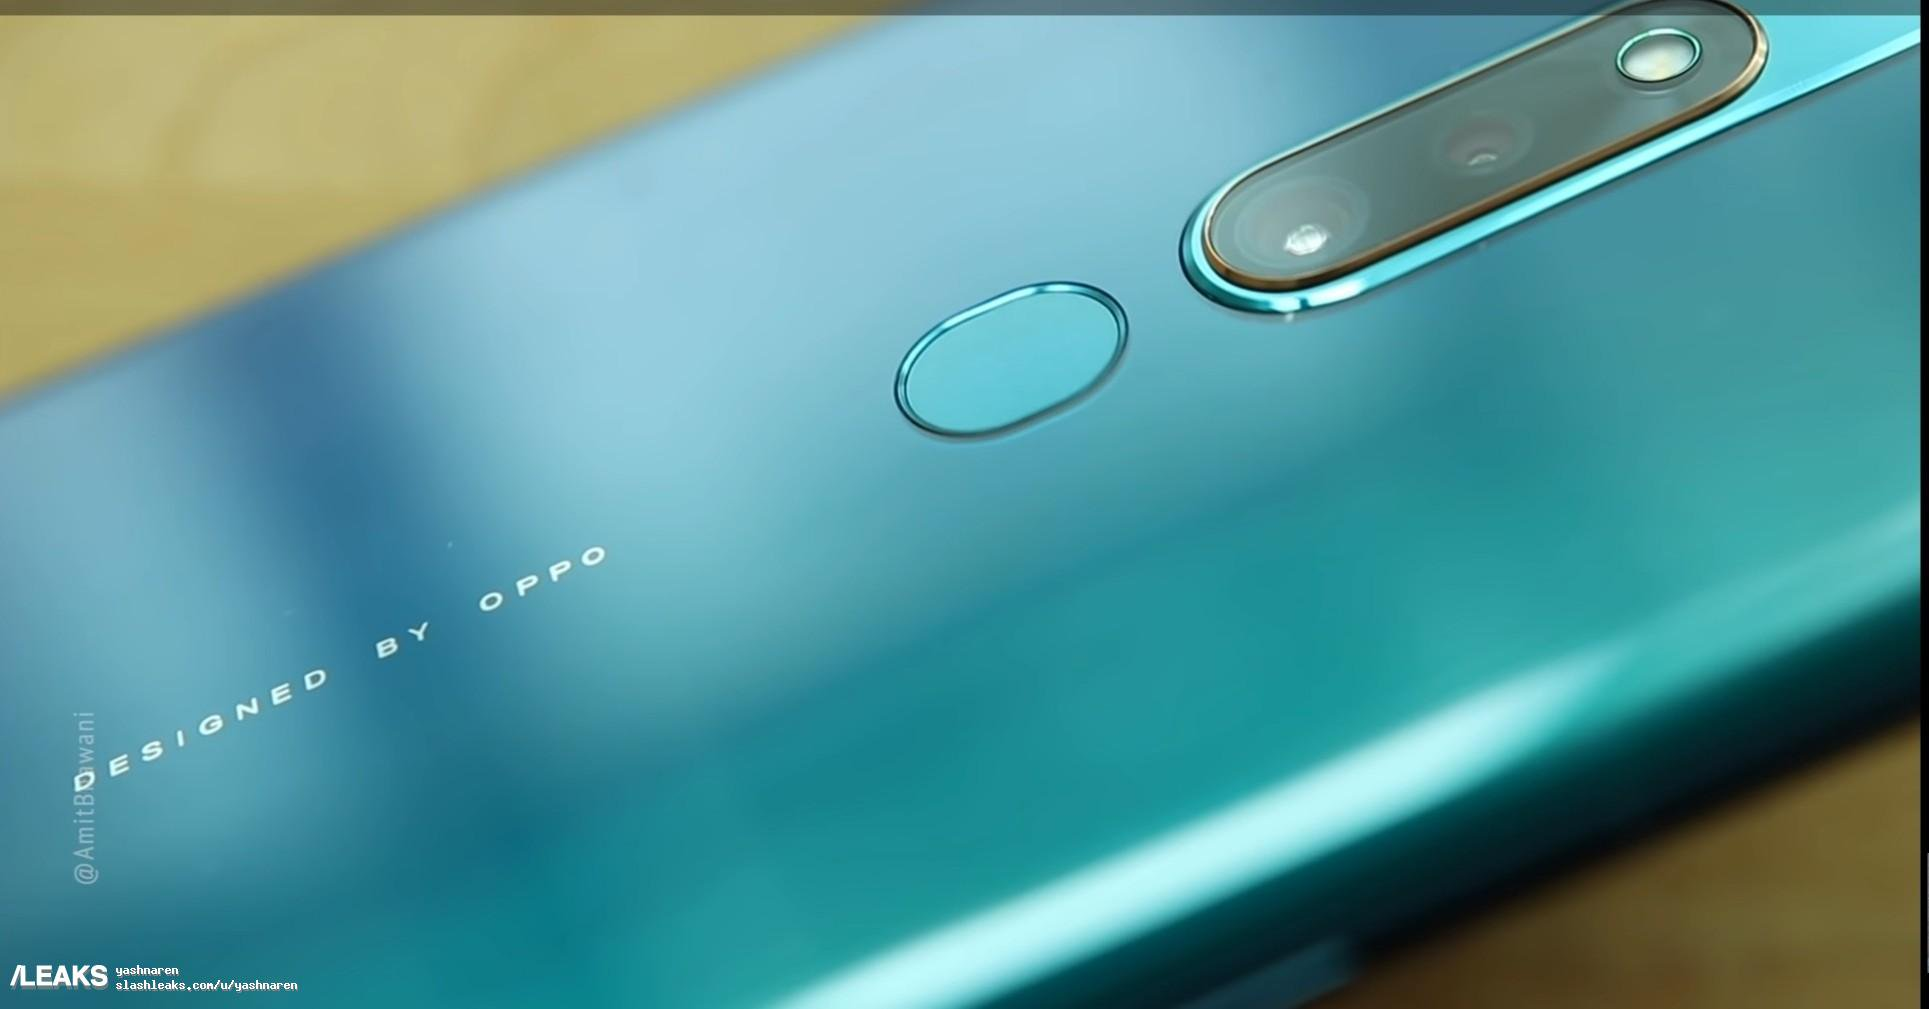 Oppo F11 Pro Retail Package Surfaces And Photos